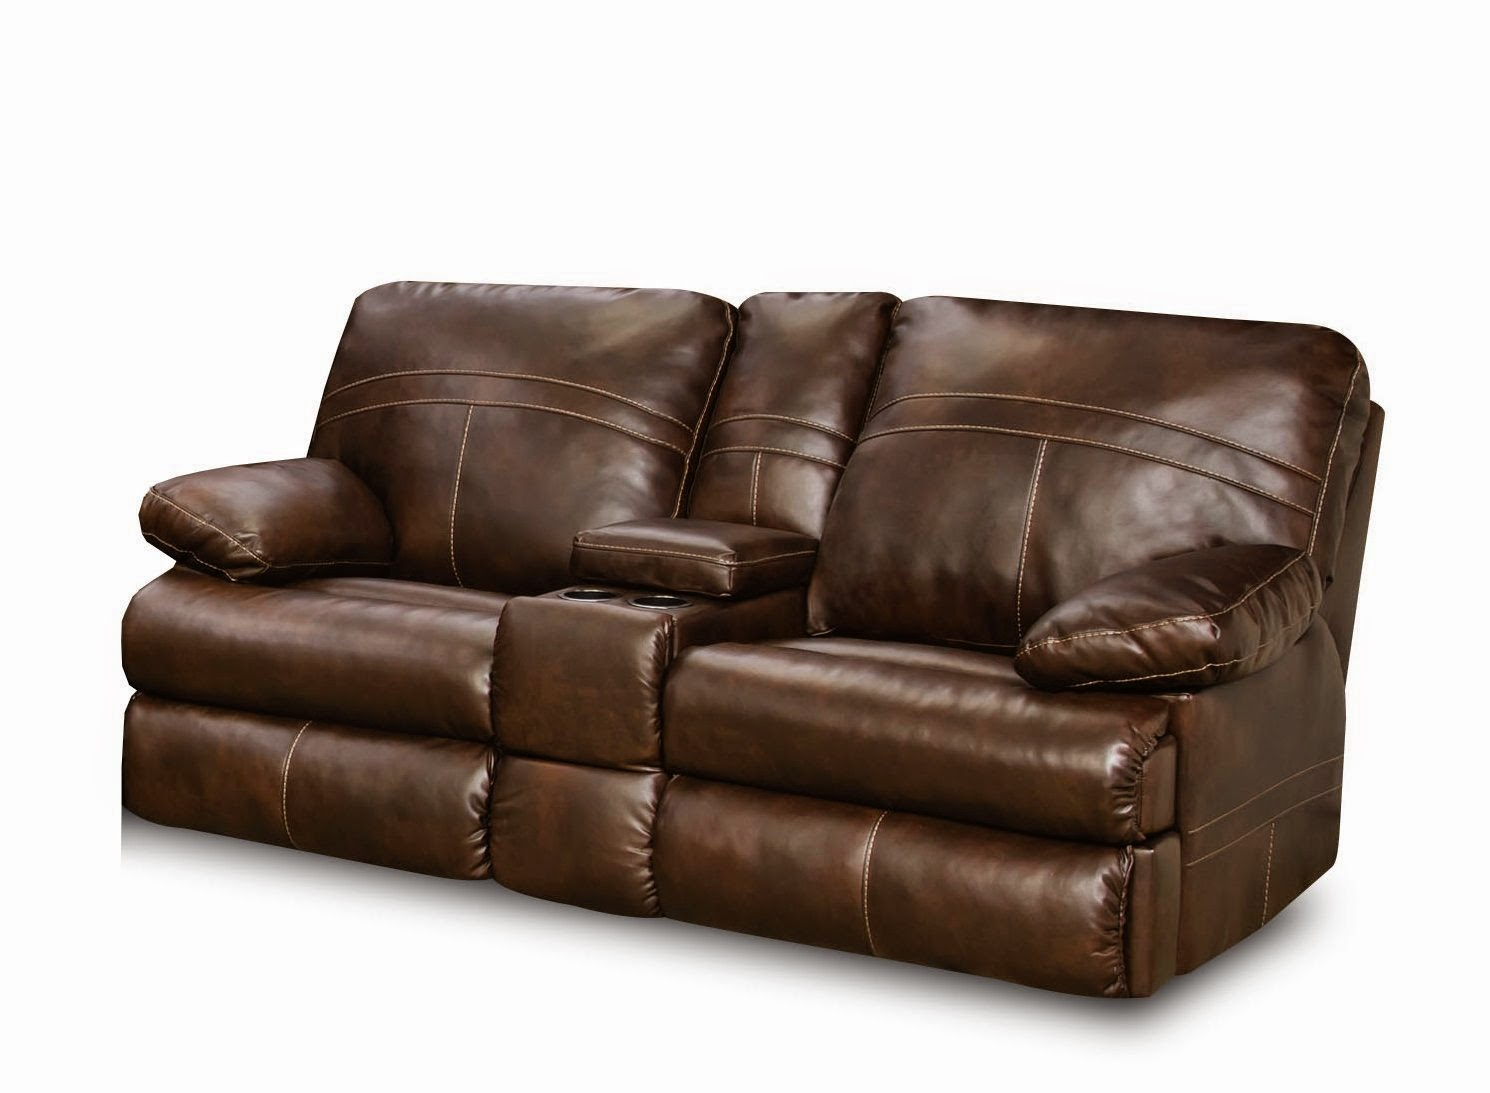 The best reclining leather sofa reviews simmons leather reclining sofa and loveseat Loveseats with console